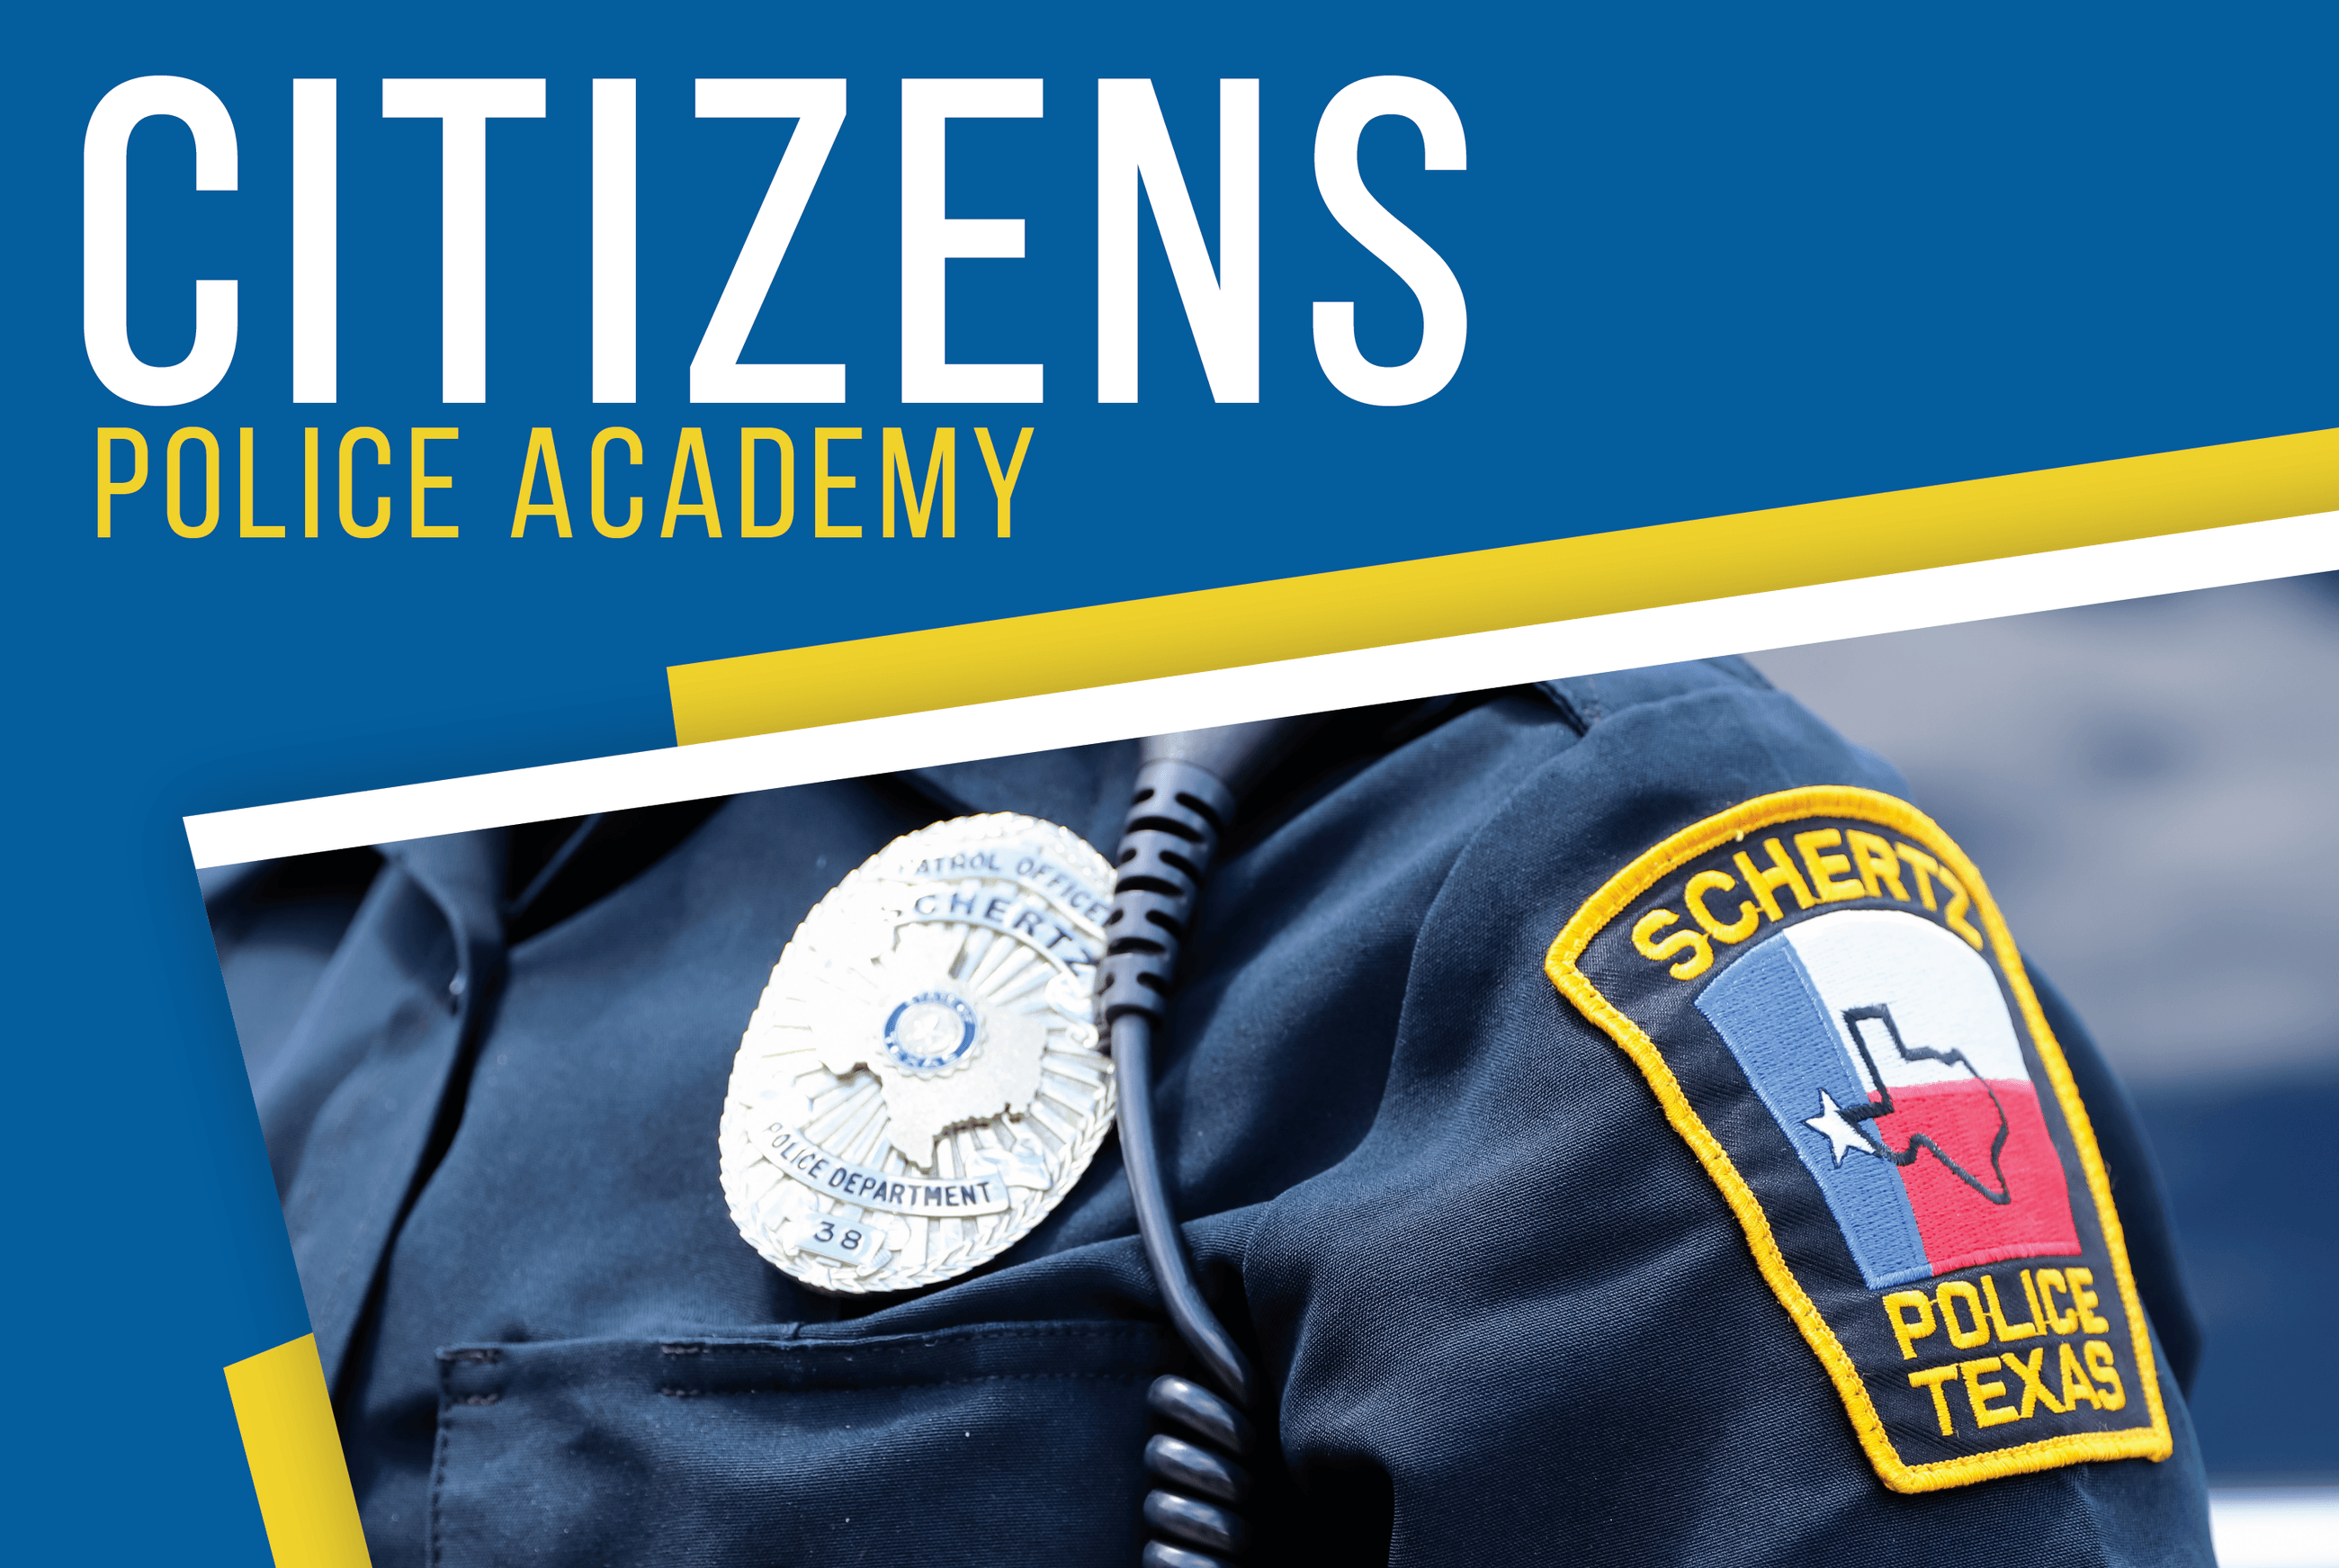 CitizensPoliceAcademy-02